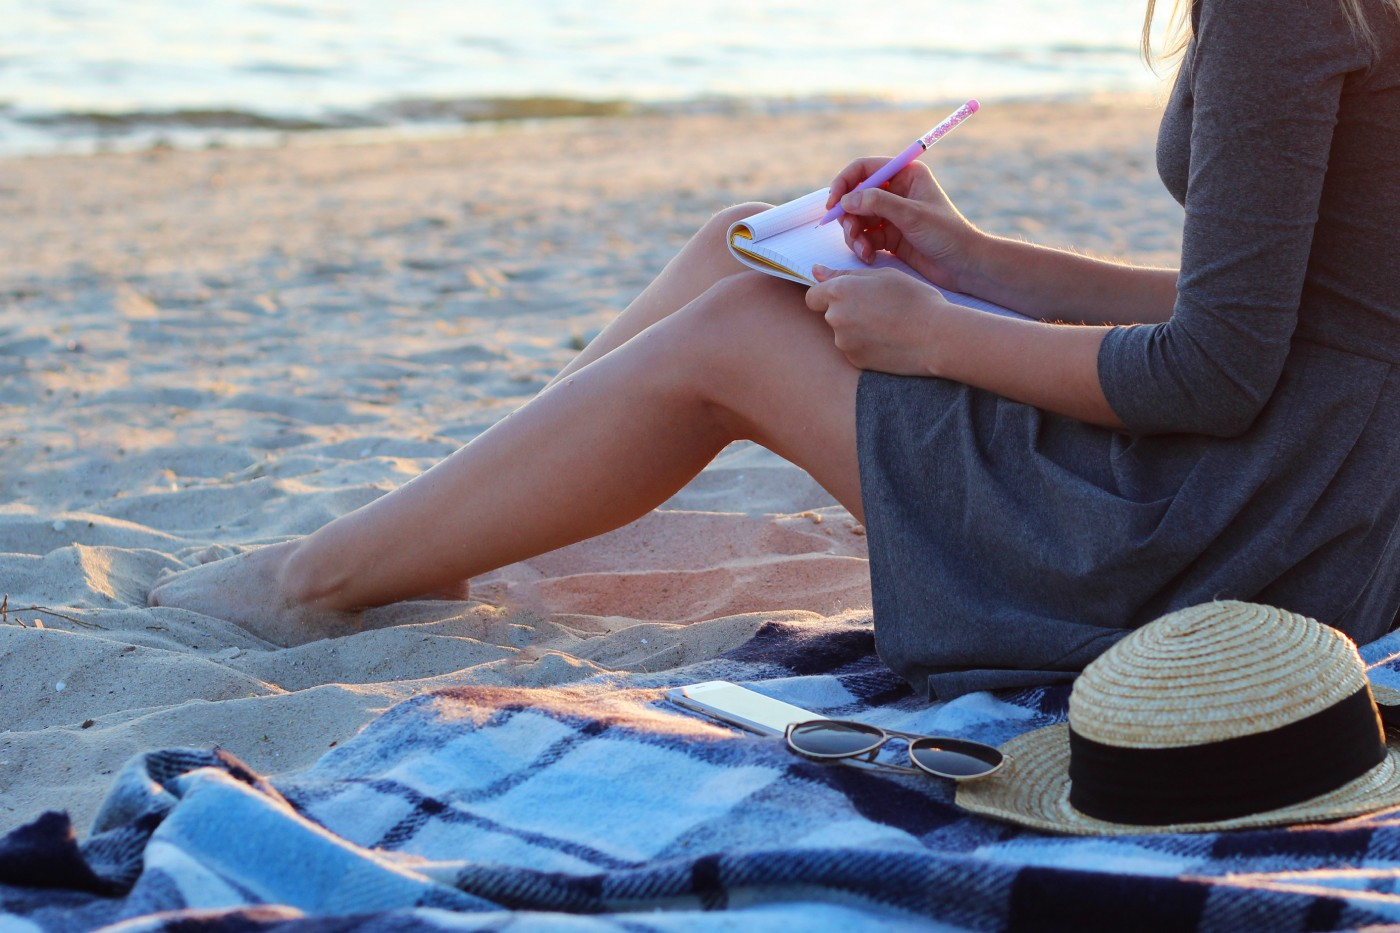 A woman in a grey dress sits on a picnic blanket on the sandy beach, just at the water's edge. She had a straw hat and sunglasses next to her and is writing in a notebook.